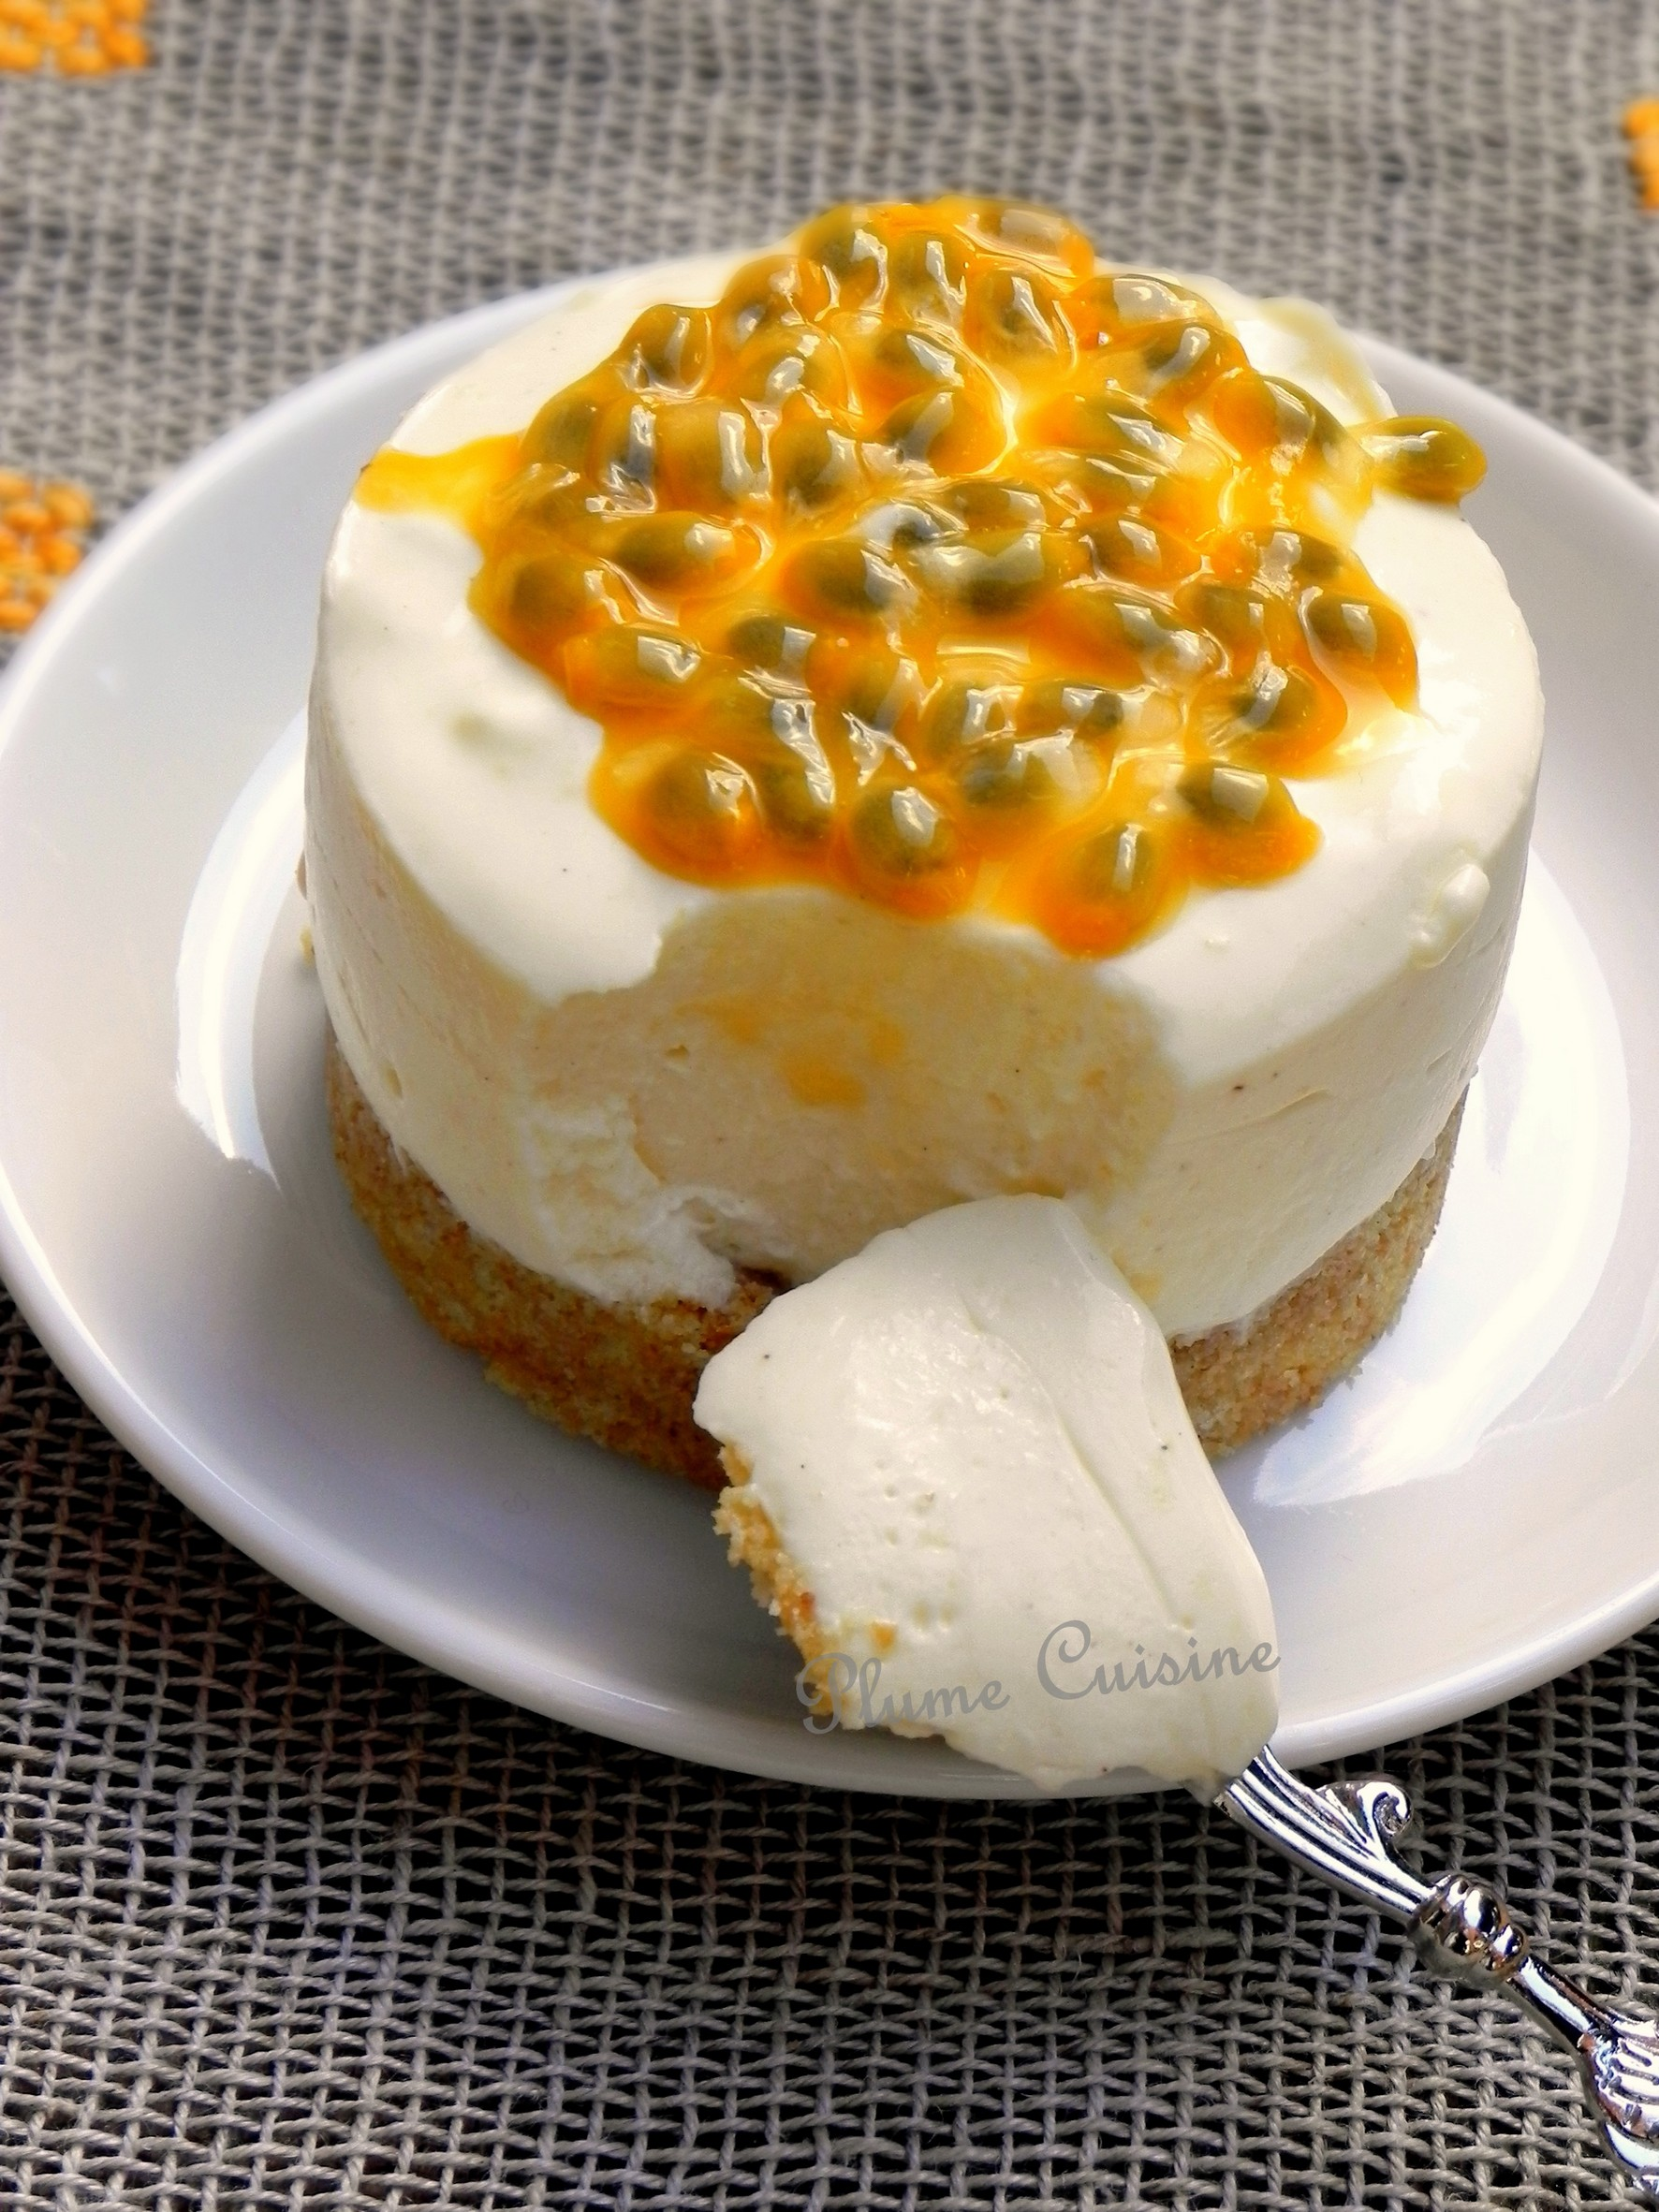 Tarte mousse au yaourt à la vanille, passion et orange